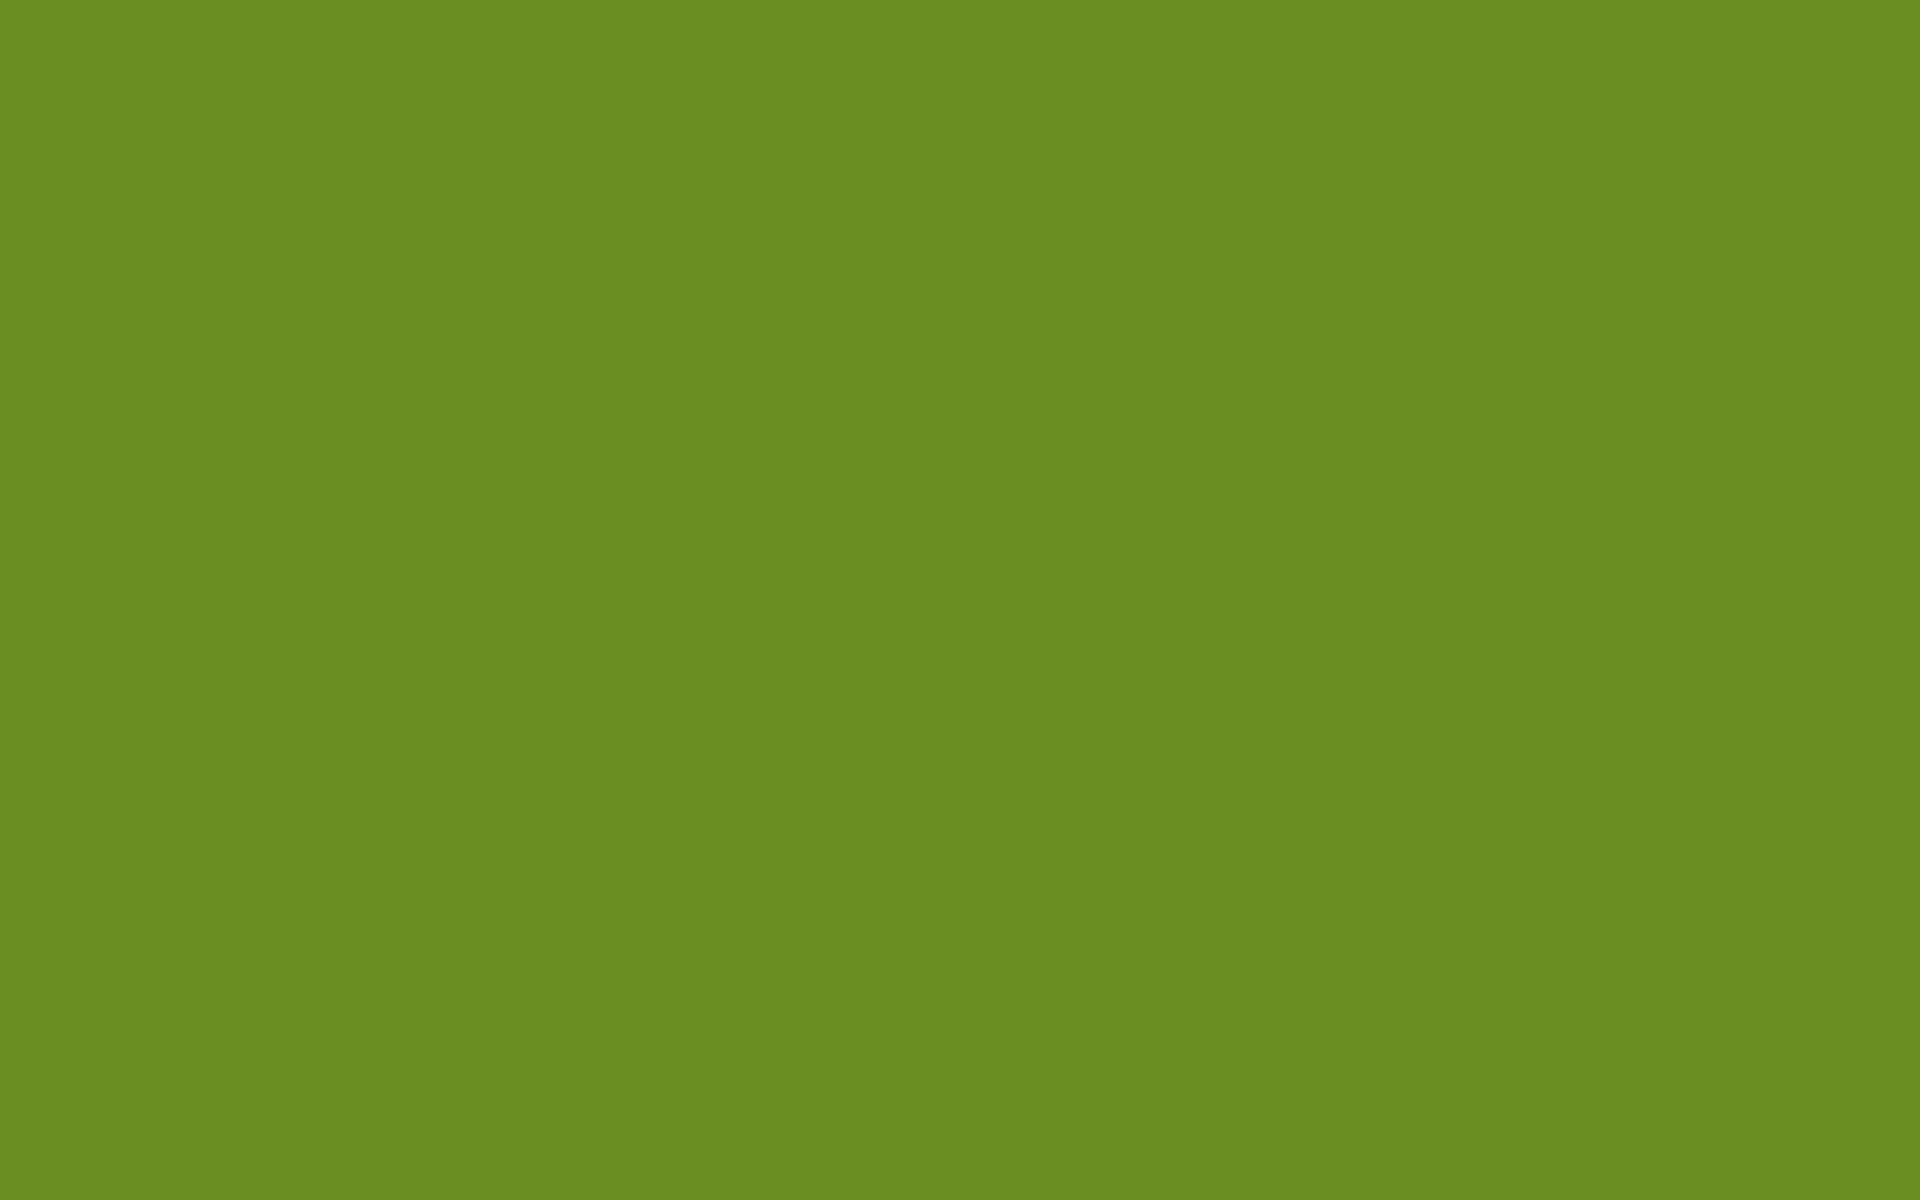 Olive Drab Number Three Solid Color Background